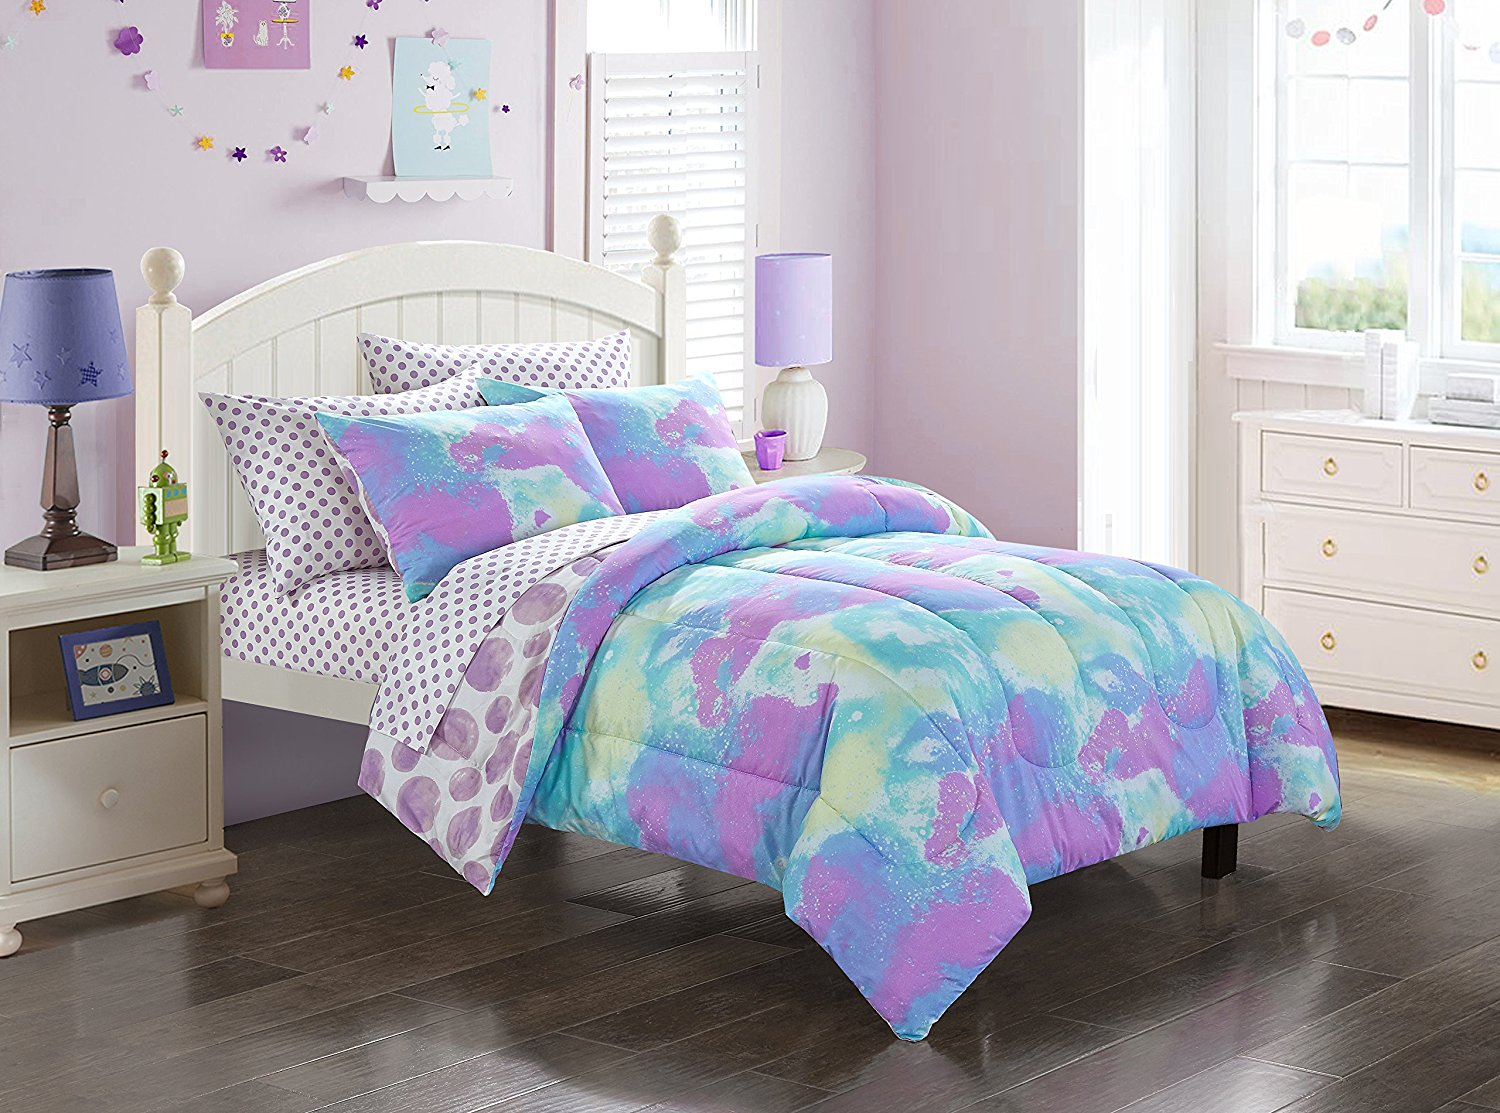 D.I.D. 7 Piece Kids Purple Teal Blue Tie Dye Comforter Set Full Sized, Colorful Paint Bedding Artistic Hippie Cloud Pattern Fun Bright Colors Watercolor Hippy Bohemian Art Themed Vibrant, Polyester